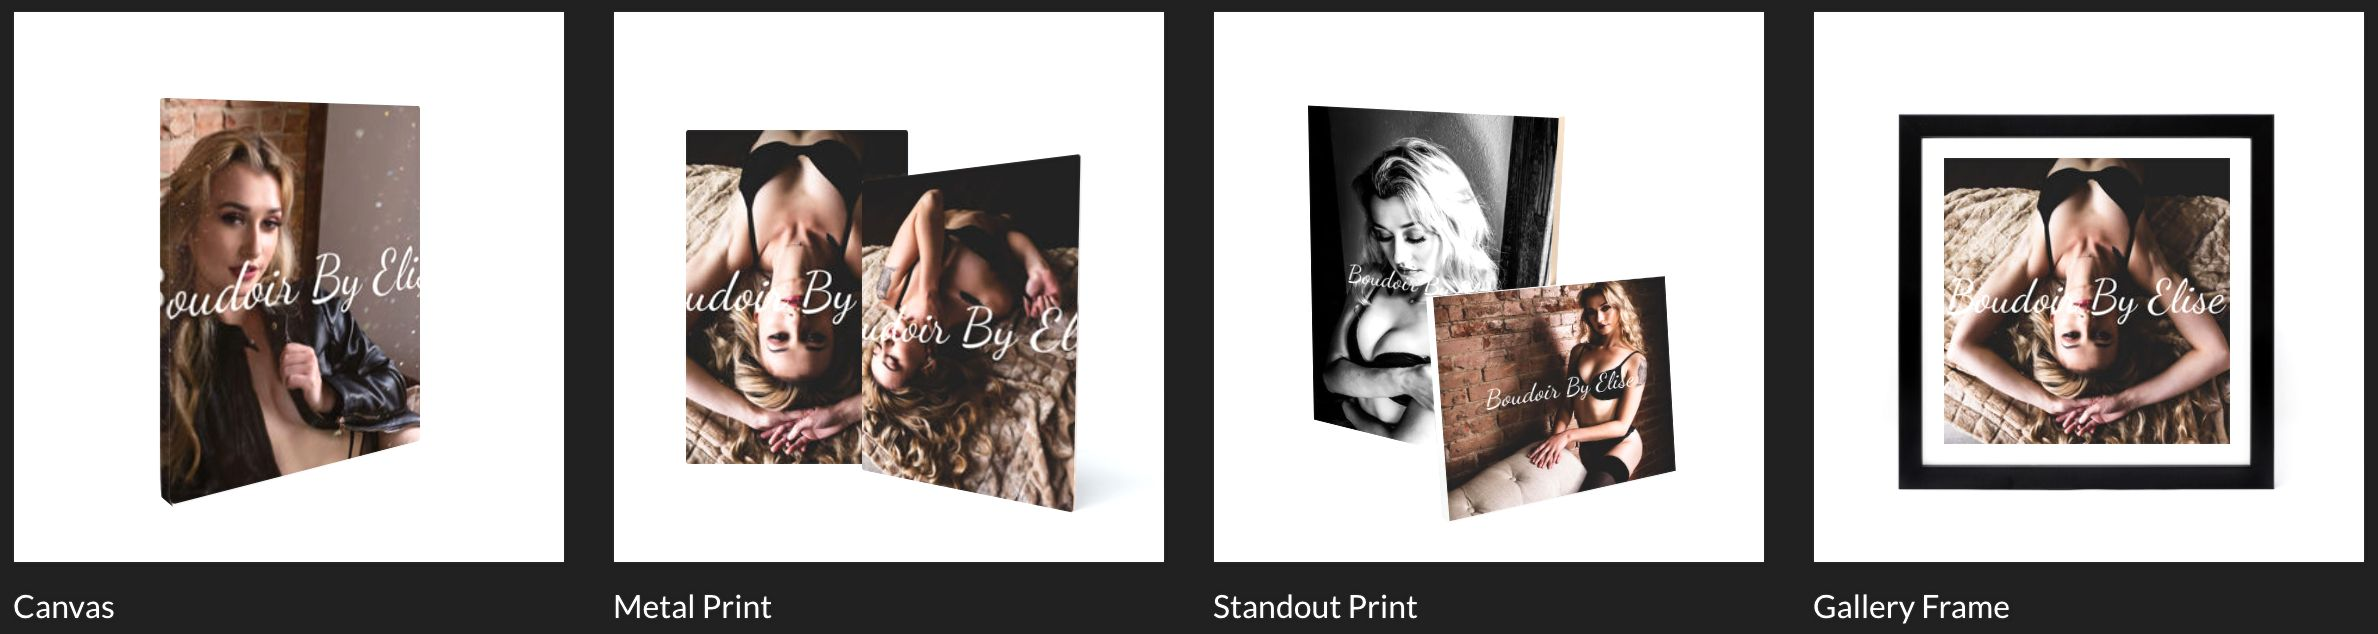 EXAMPLES OF PRINTED PRODUCTS WE HAVE AVAILABLE IN OUR STORE, SUCH AS CANVAS', ALBUMS, AND MUCH MORE!